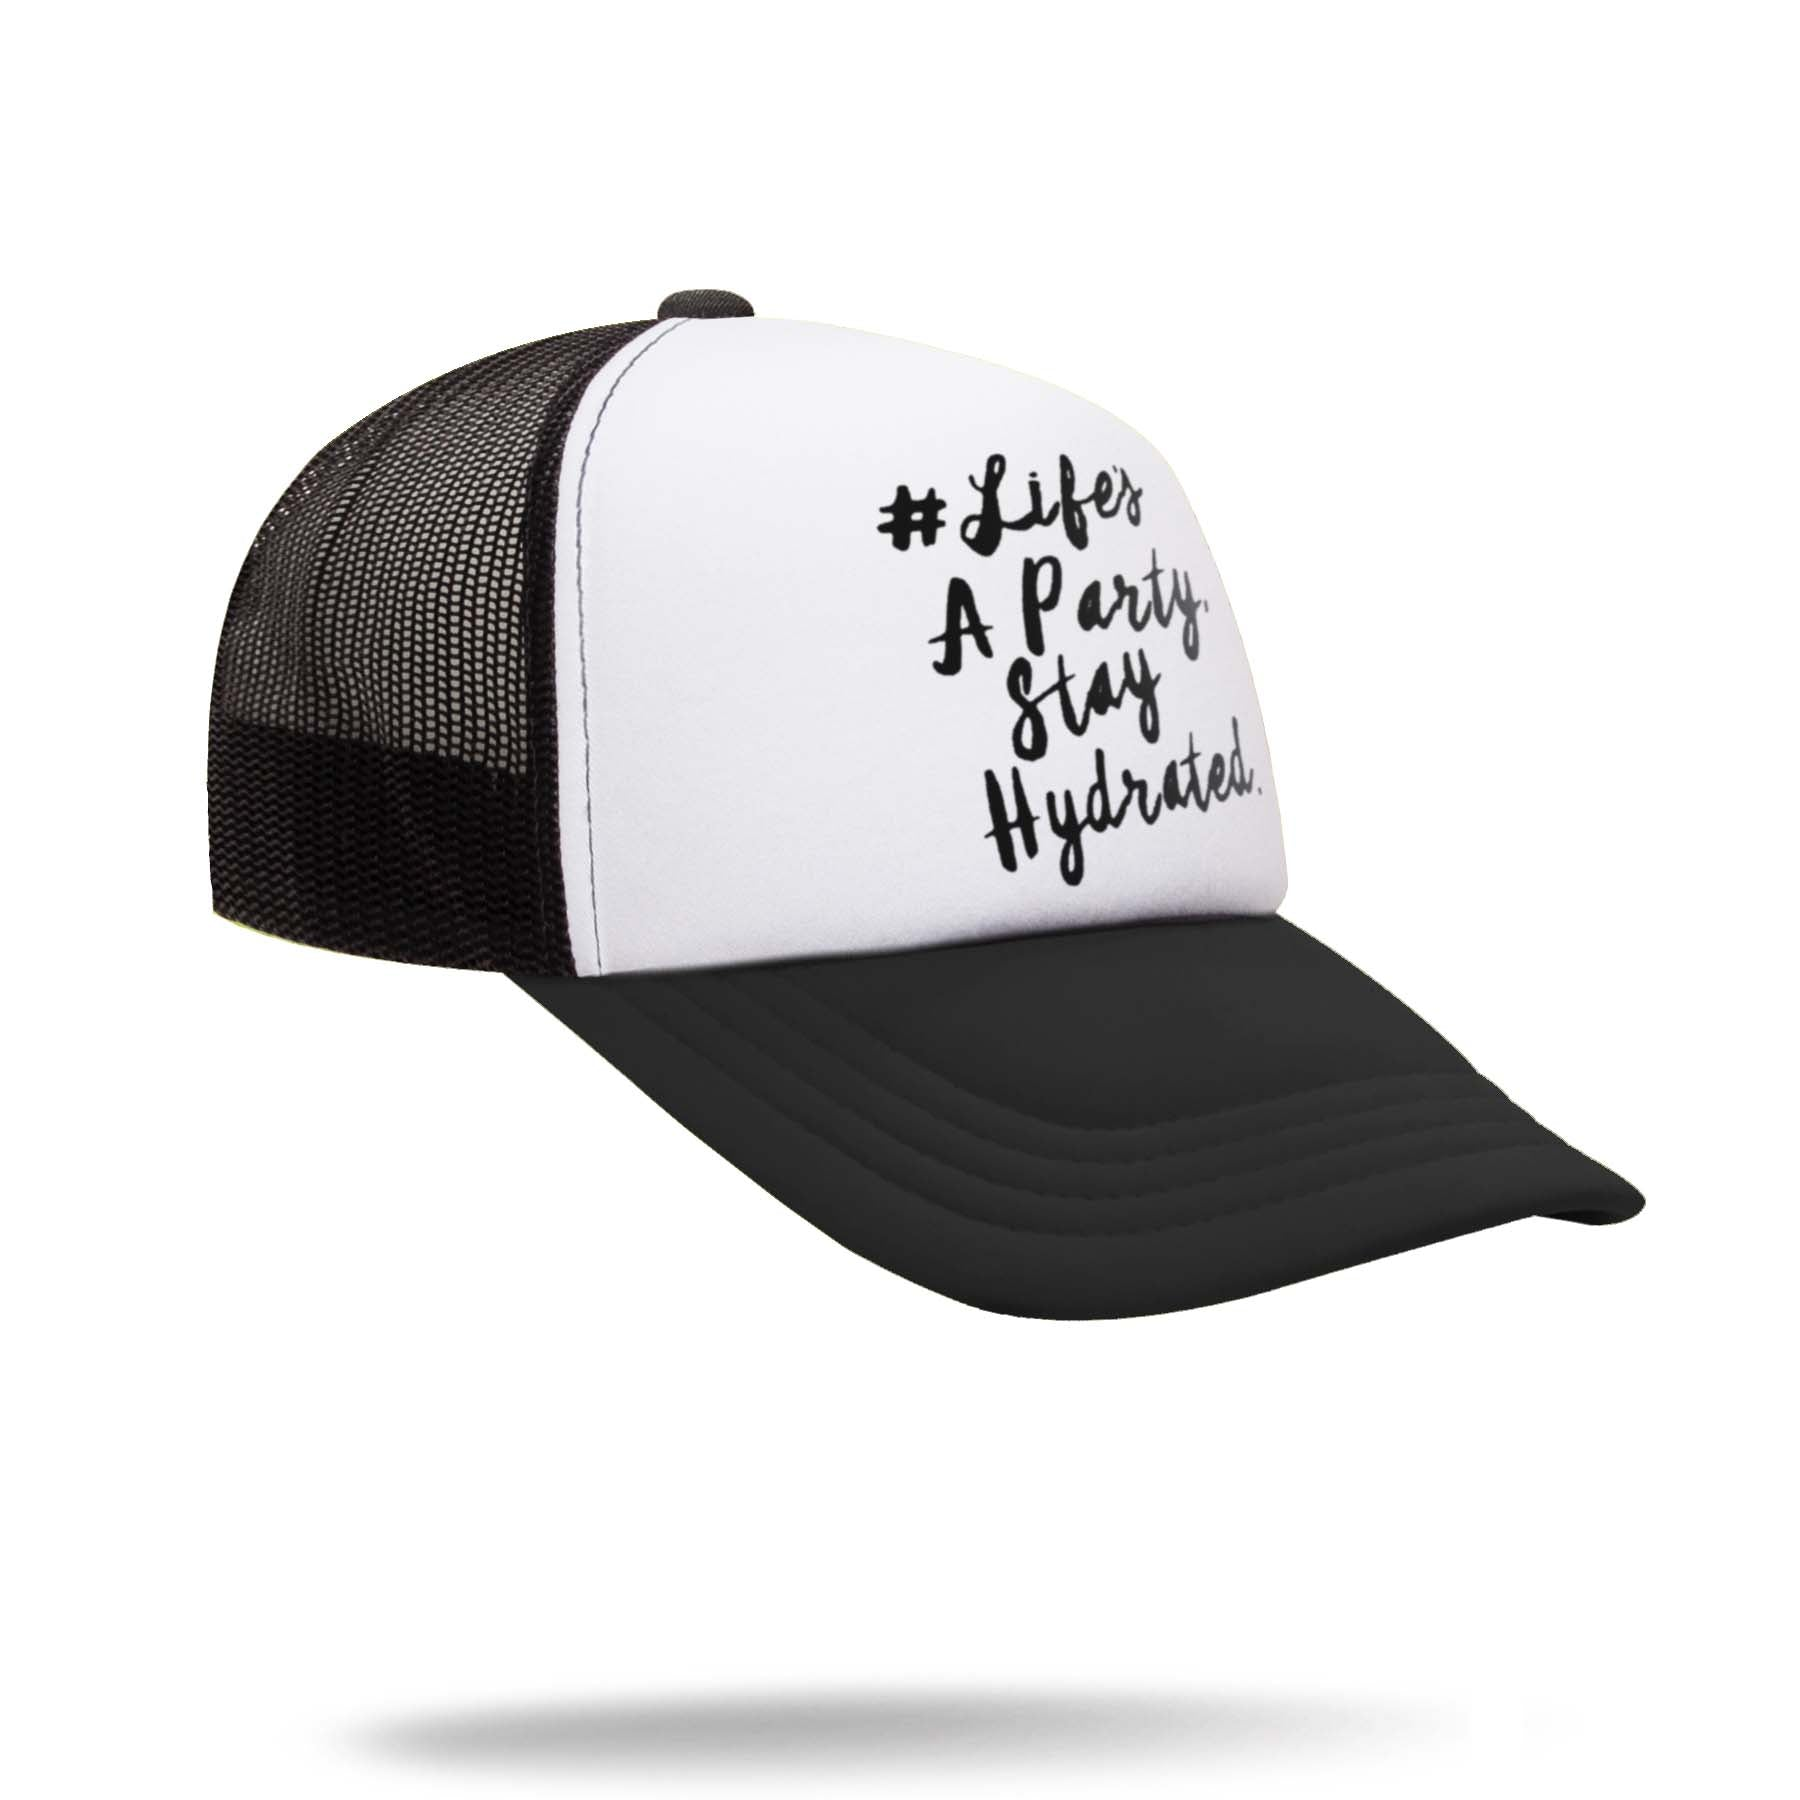 Black and White Adjustable Trucker Hat for music festivals